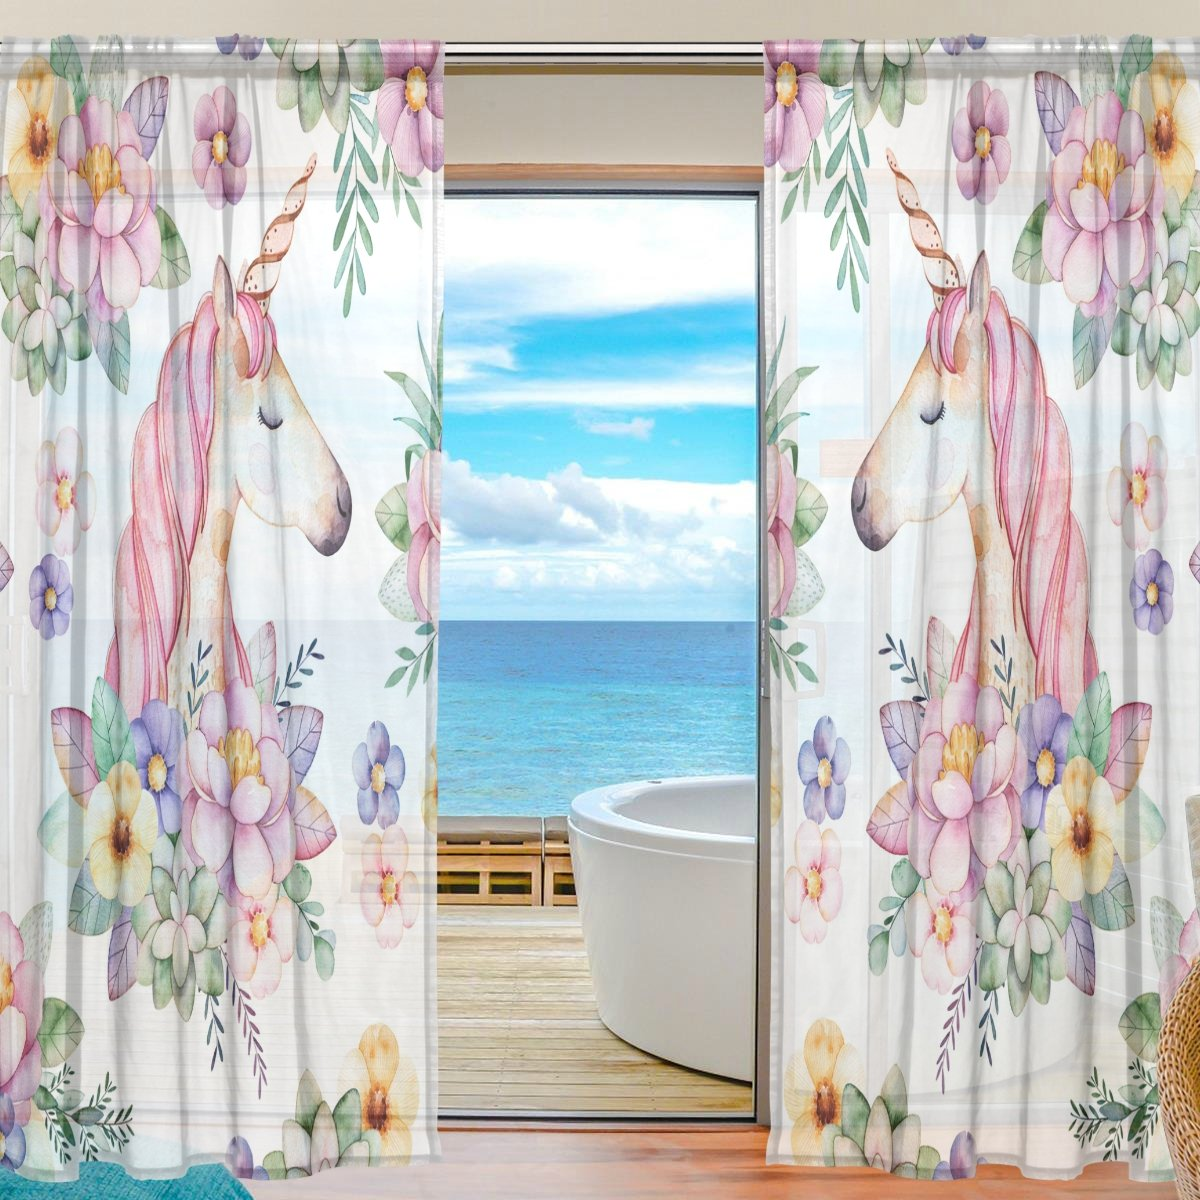 SEULIFE Window Sheer Curtain, Animal Unicorn Floral Flower Leaves Voile Curtain Drapes for Door Kitchen Living Room Bedroom 55x78 inches 2 Panels